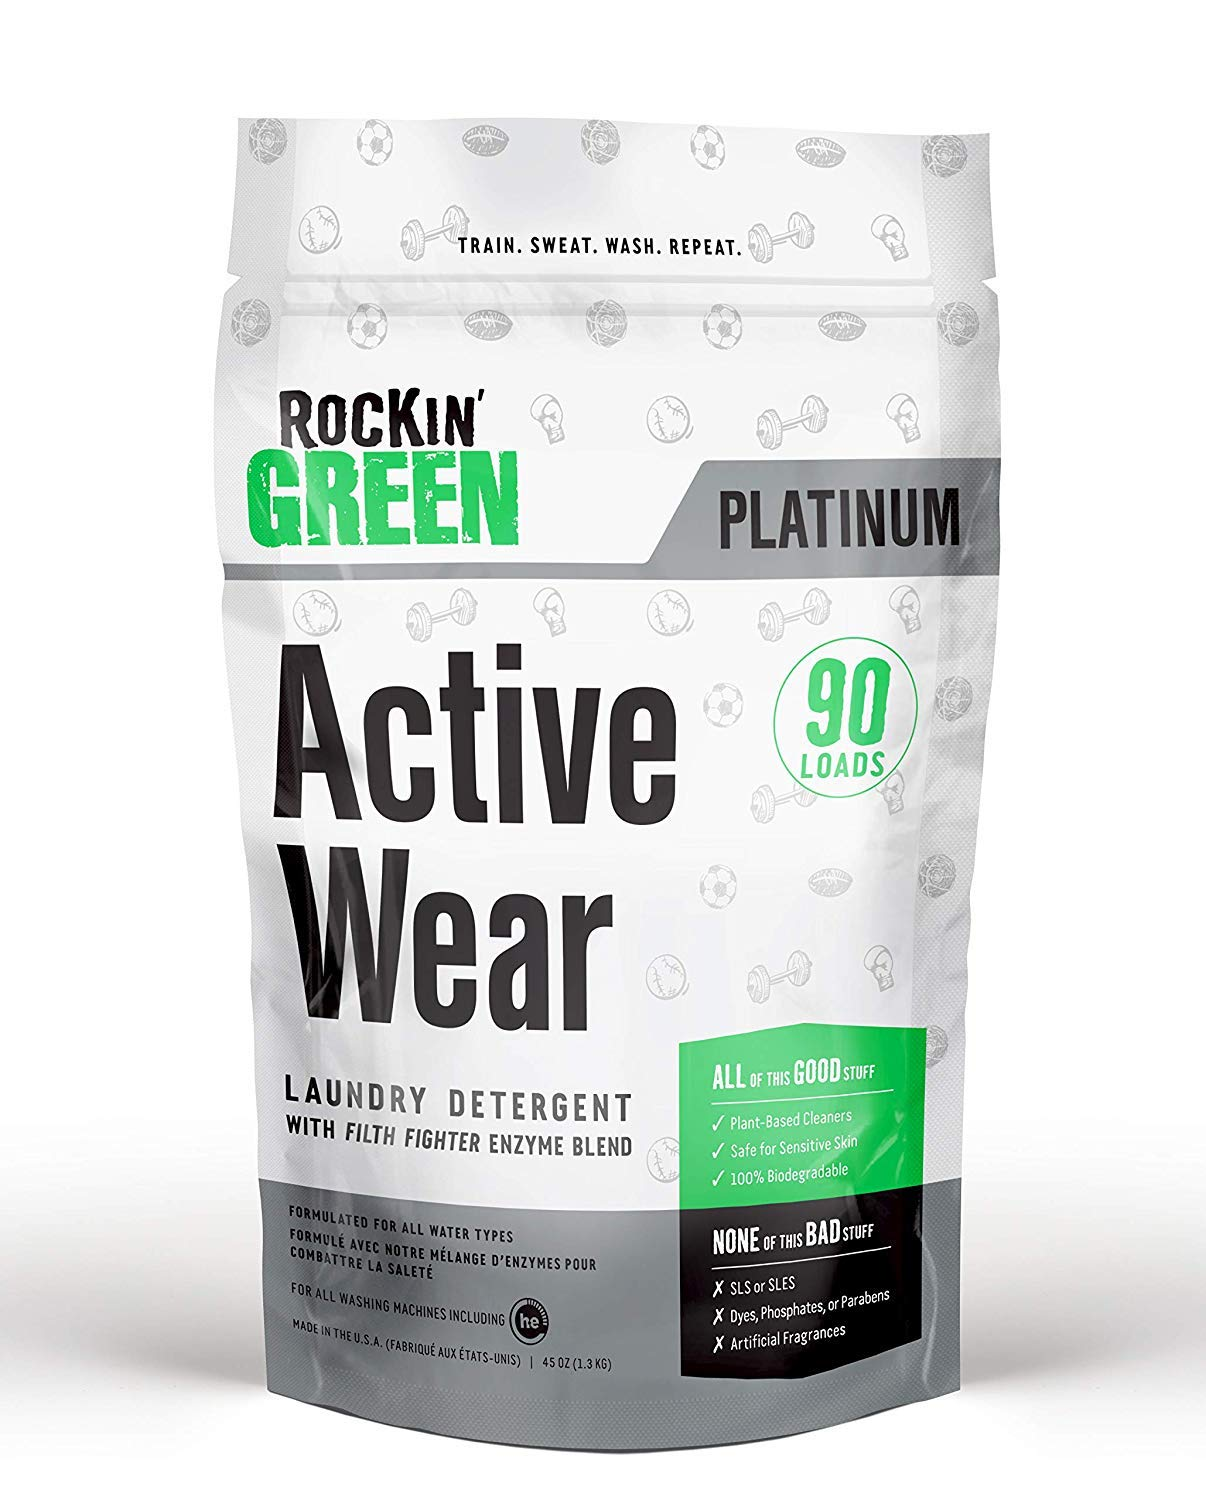 Rockin' Green Platinum Series Active Wear Laundry Detergent Powder, 45 oz. - All Natural, Biodegradable, and Eco-Friendly by Rockin' Green